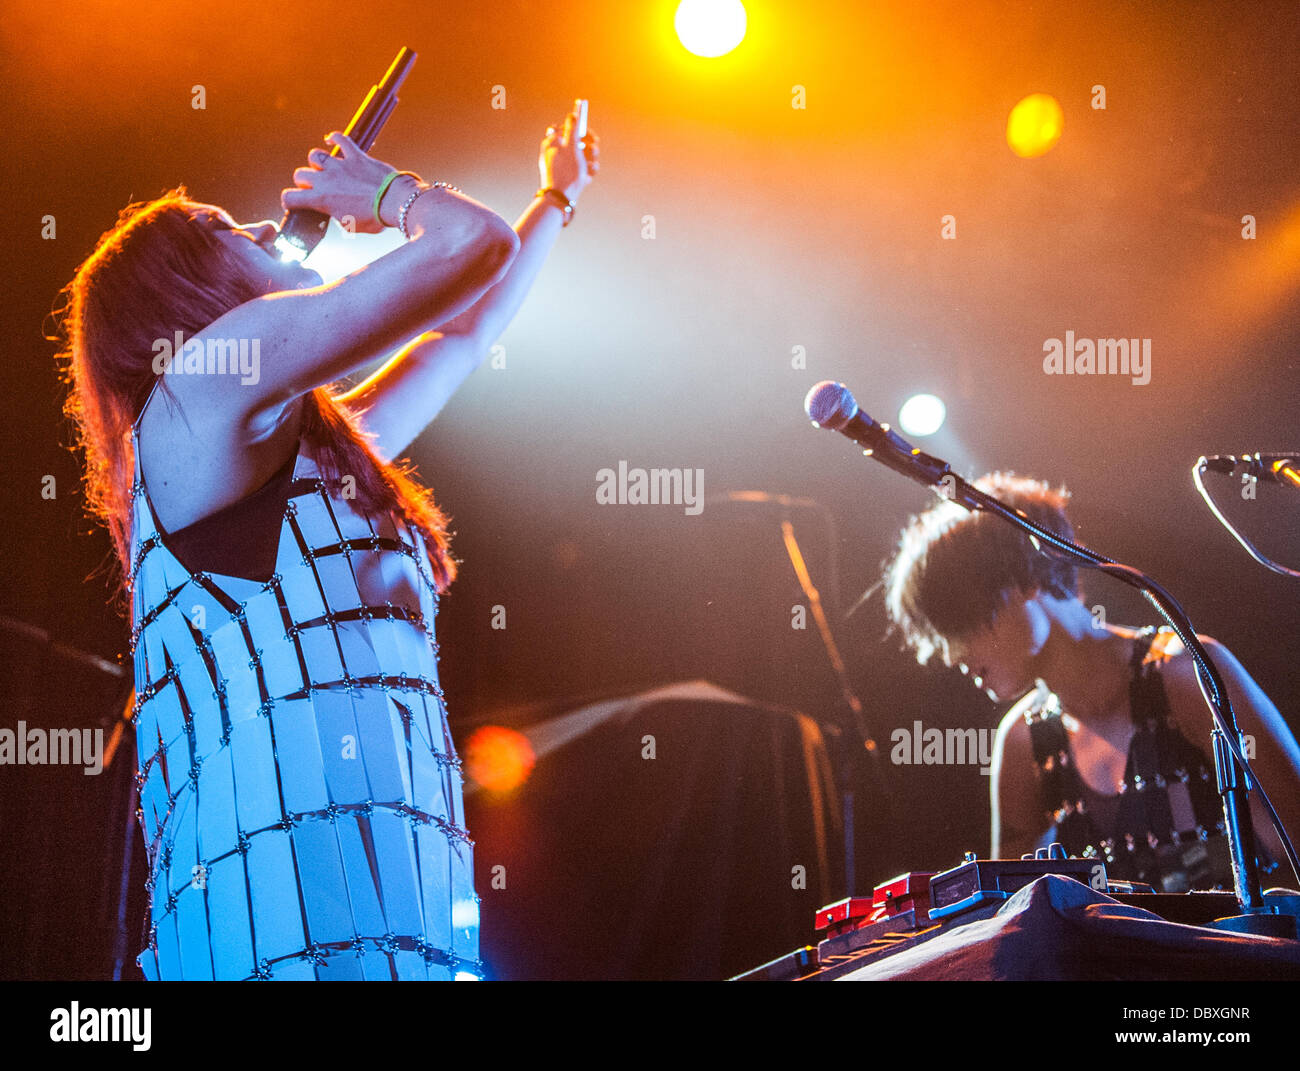 Caroline Hjelt and Aino Jawo of Icona Pop performing live at Metro in Chicago, IL July 31, 2013 - Stock Image